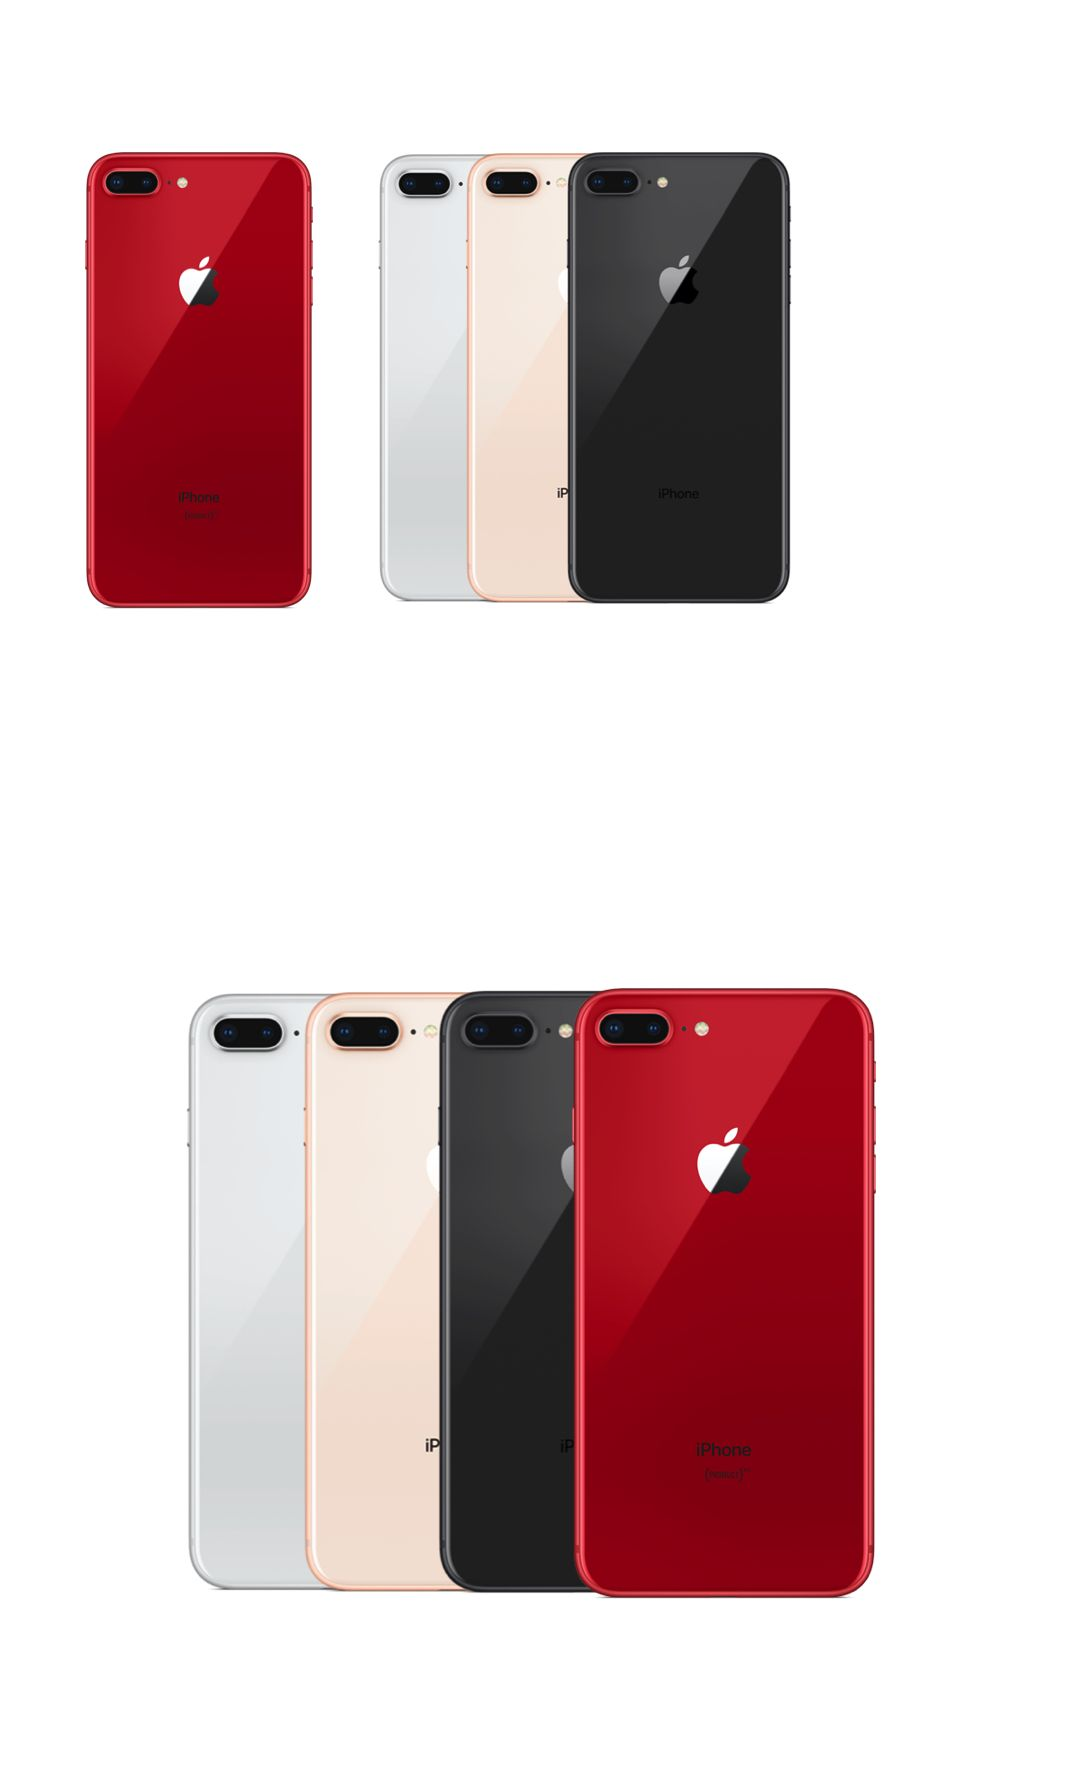 Apple Iphone 8 Plus 64gb Red All Colors Gsm Unlocked Brand New Iphone Prepaid Phones Iphone 8 Plus